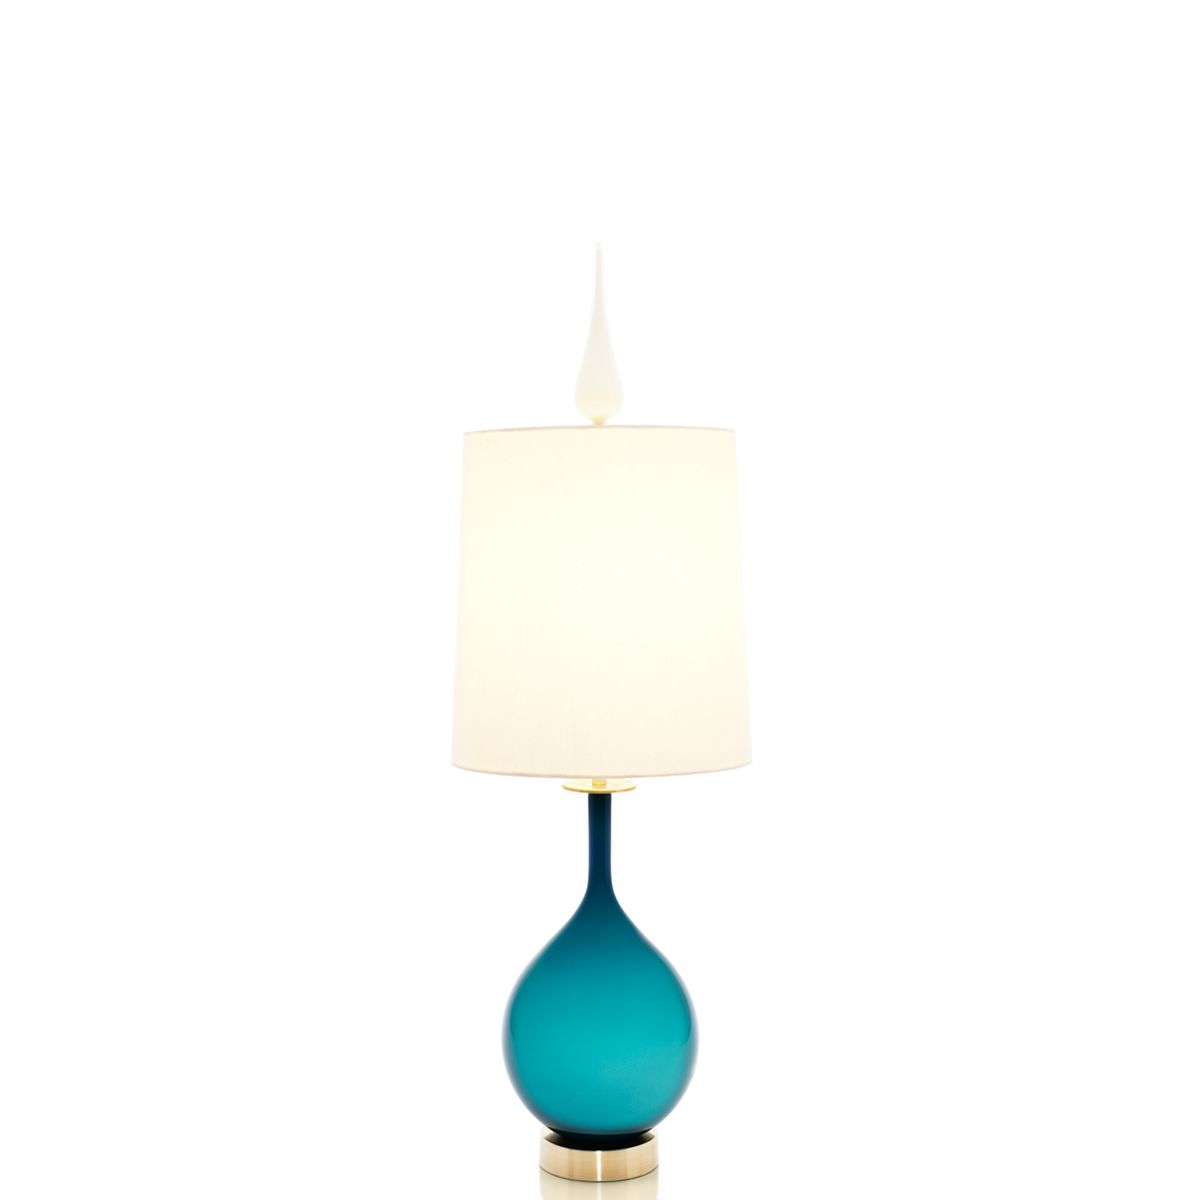 PIERRE II TABLE LAMP $950-   PLEASE CONTACT US  TO PLACE YOUR ORDER